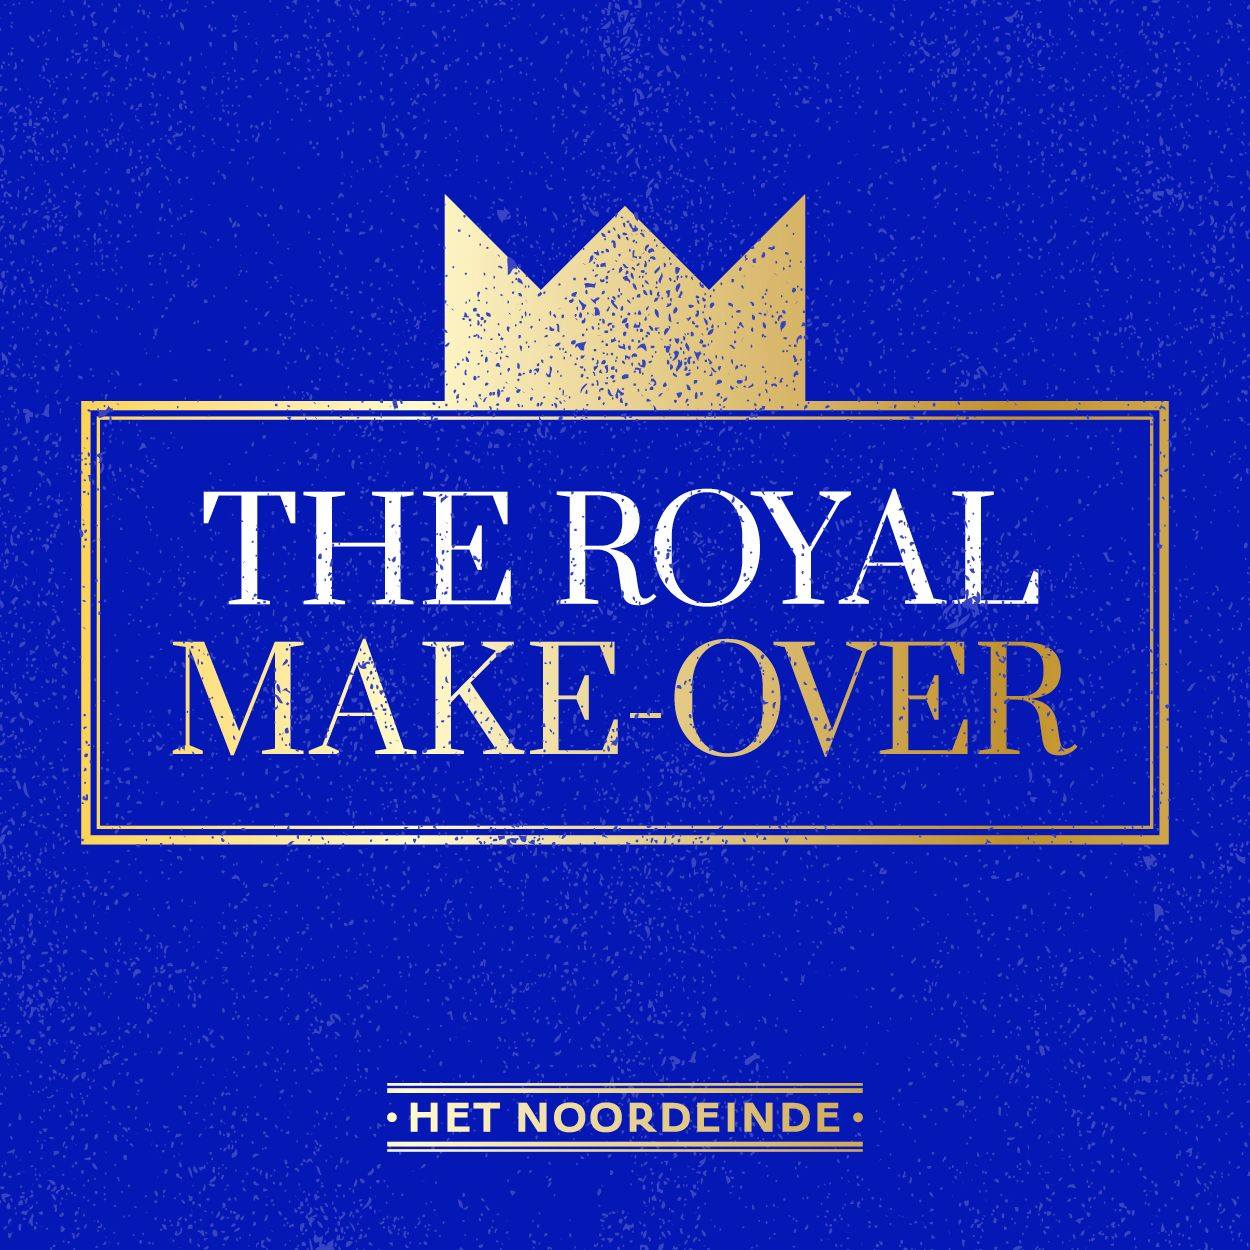 ROYAL MAKE-OVER